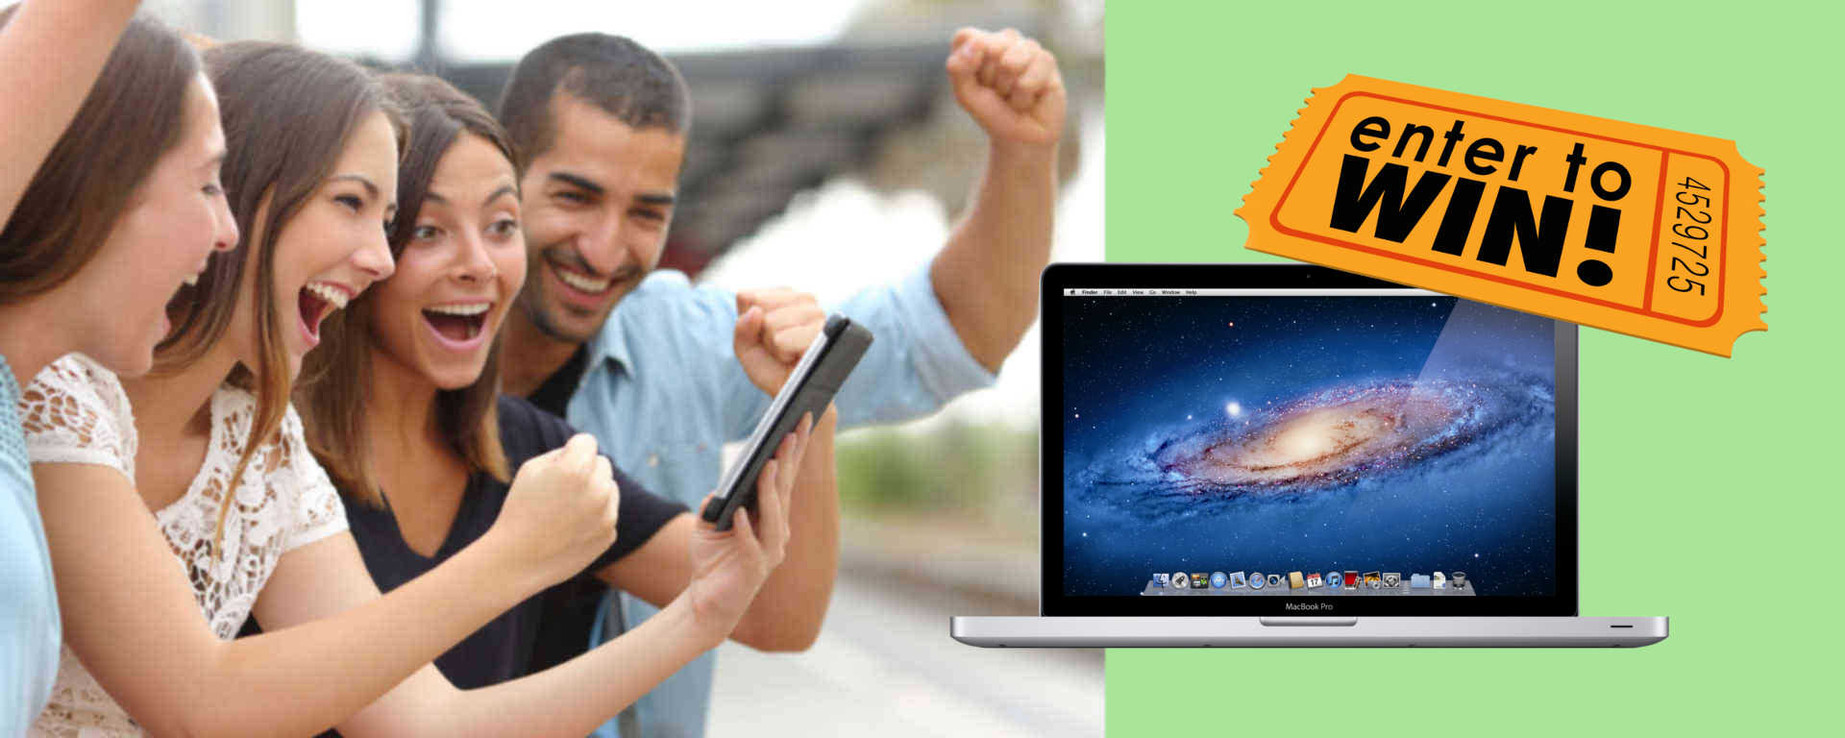 Enter to win a $700 Macbook Pro in the GainSaver April-May 2016 Sweepstakes